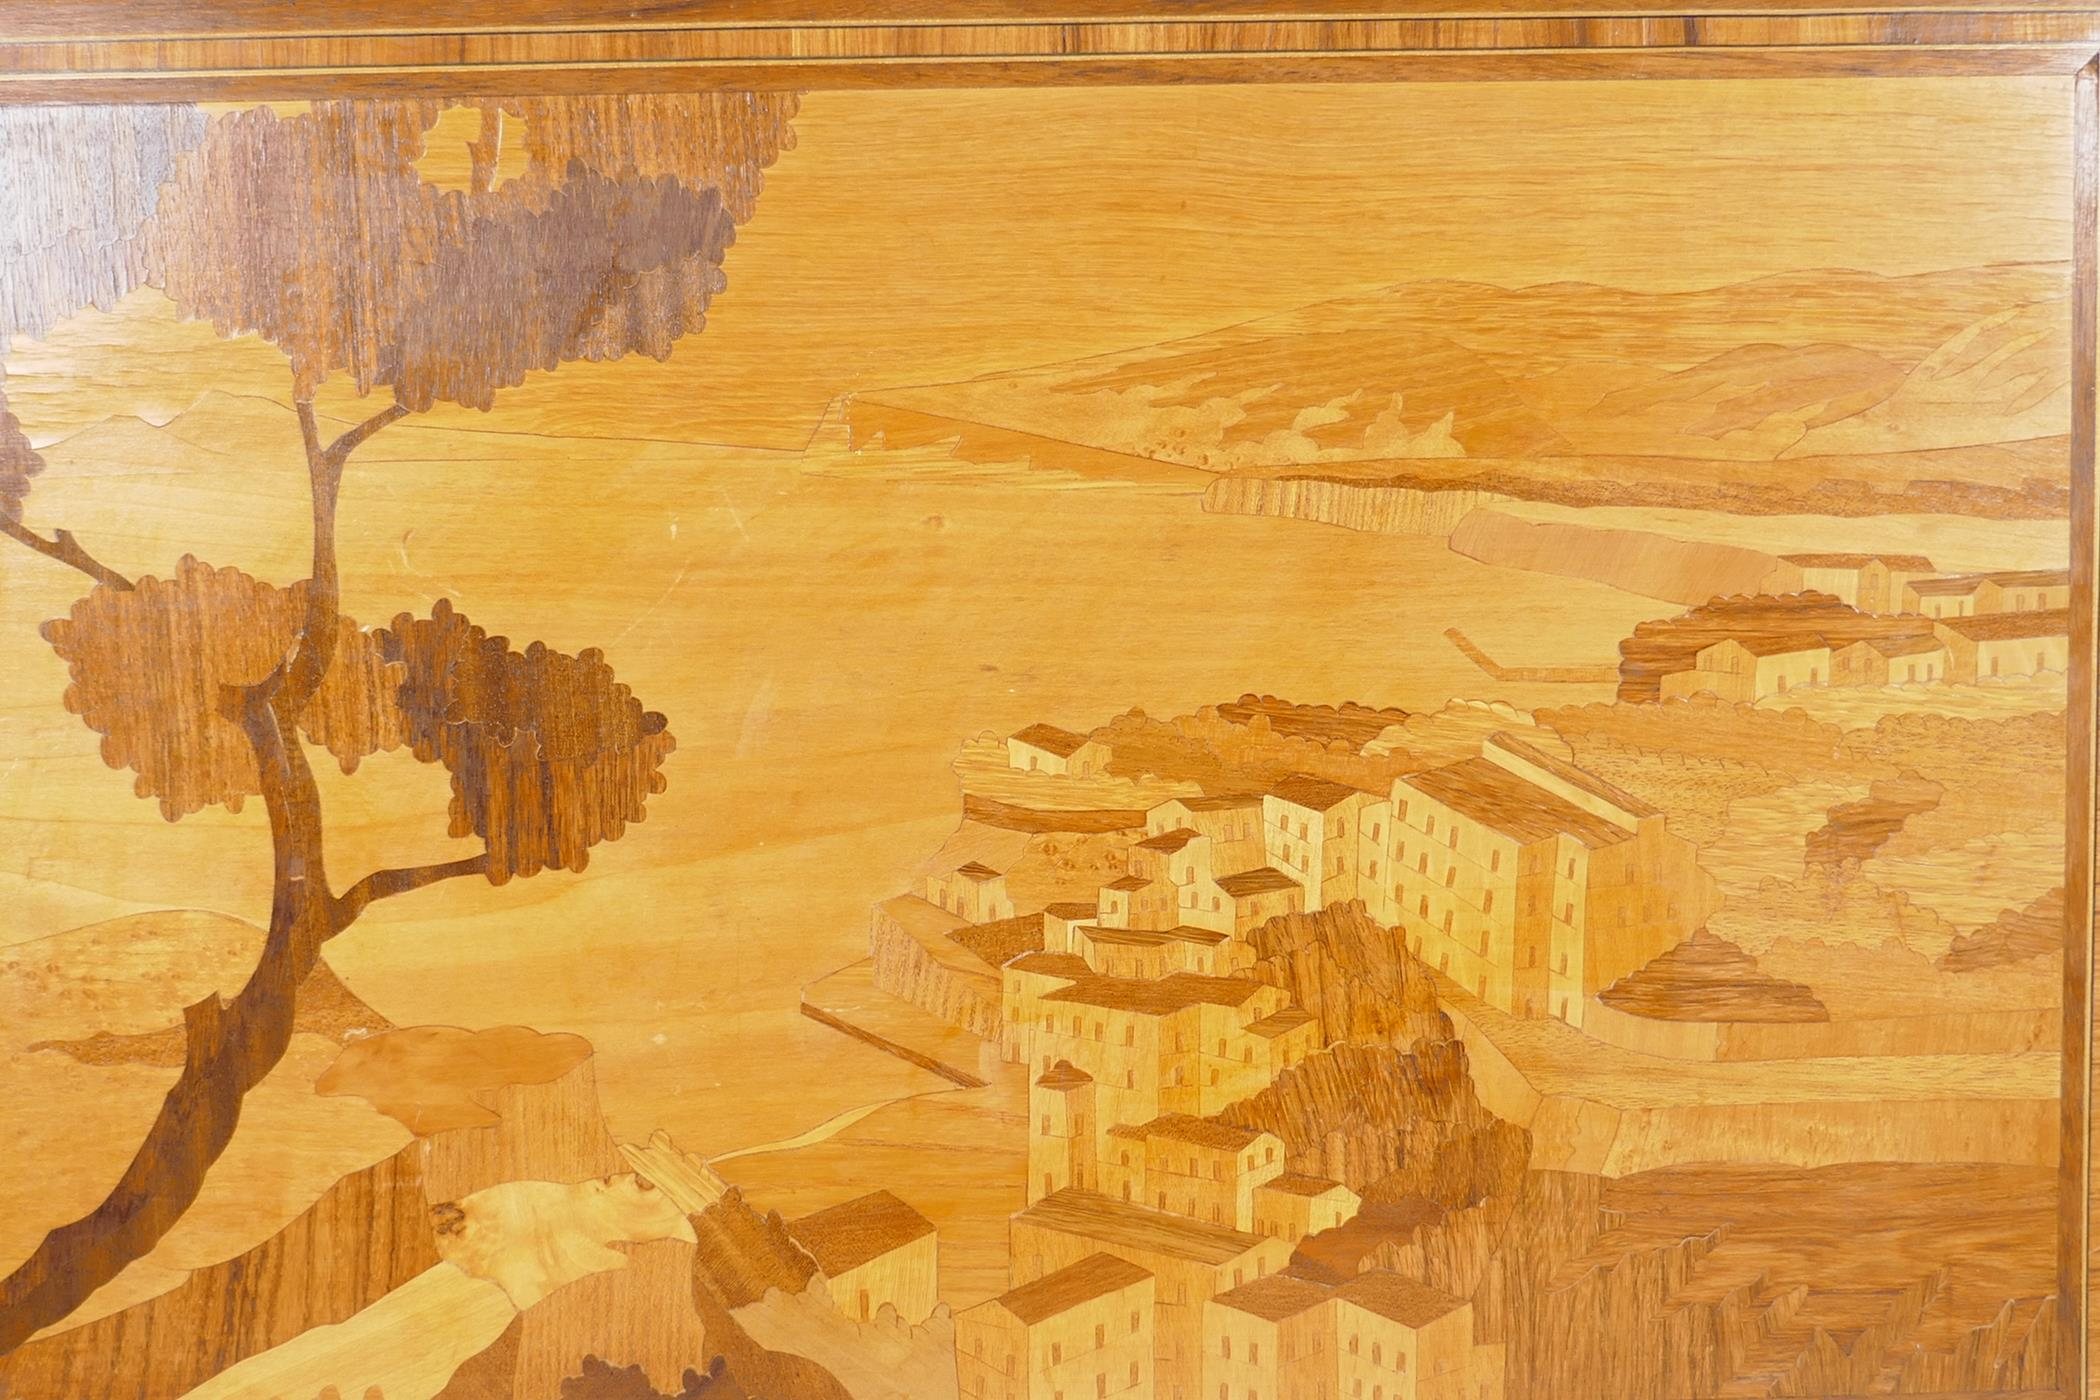 """A Sorrento wood panel with inlaid decoration of an Italian cliffside village, 23½"""" x 16"""" - Image 2 of 2"""